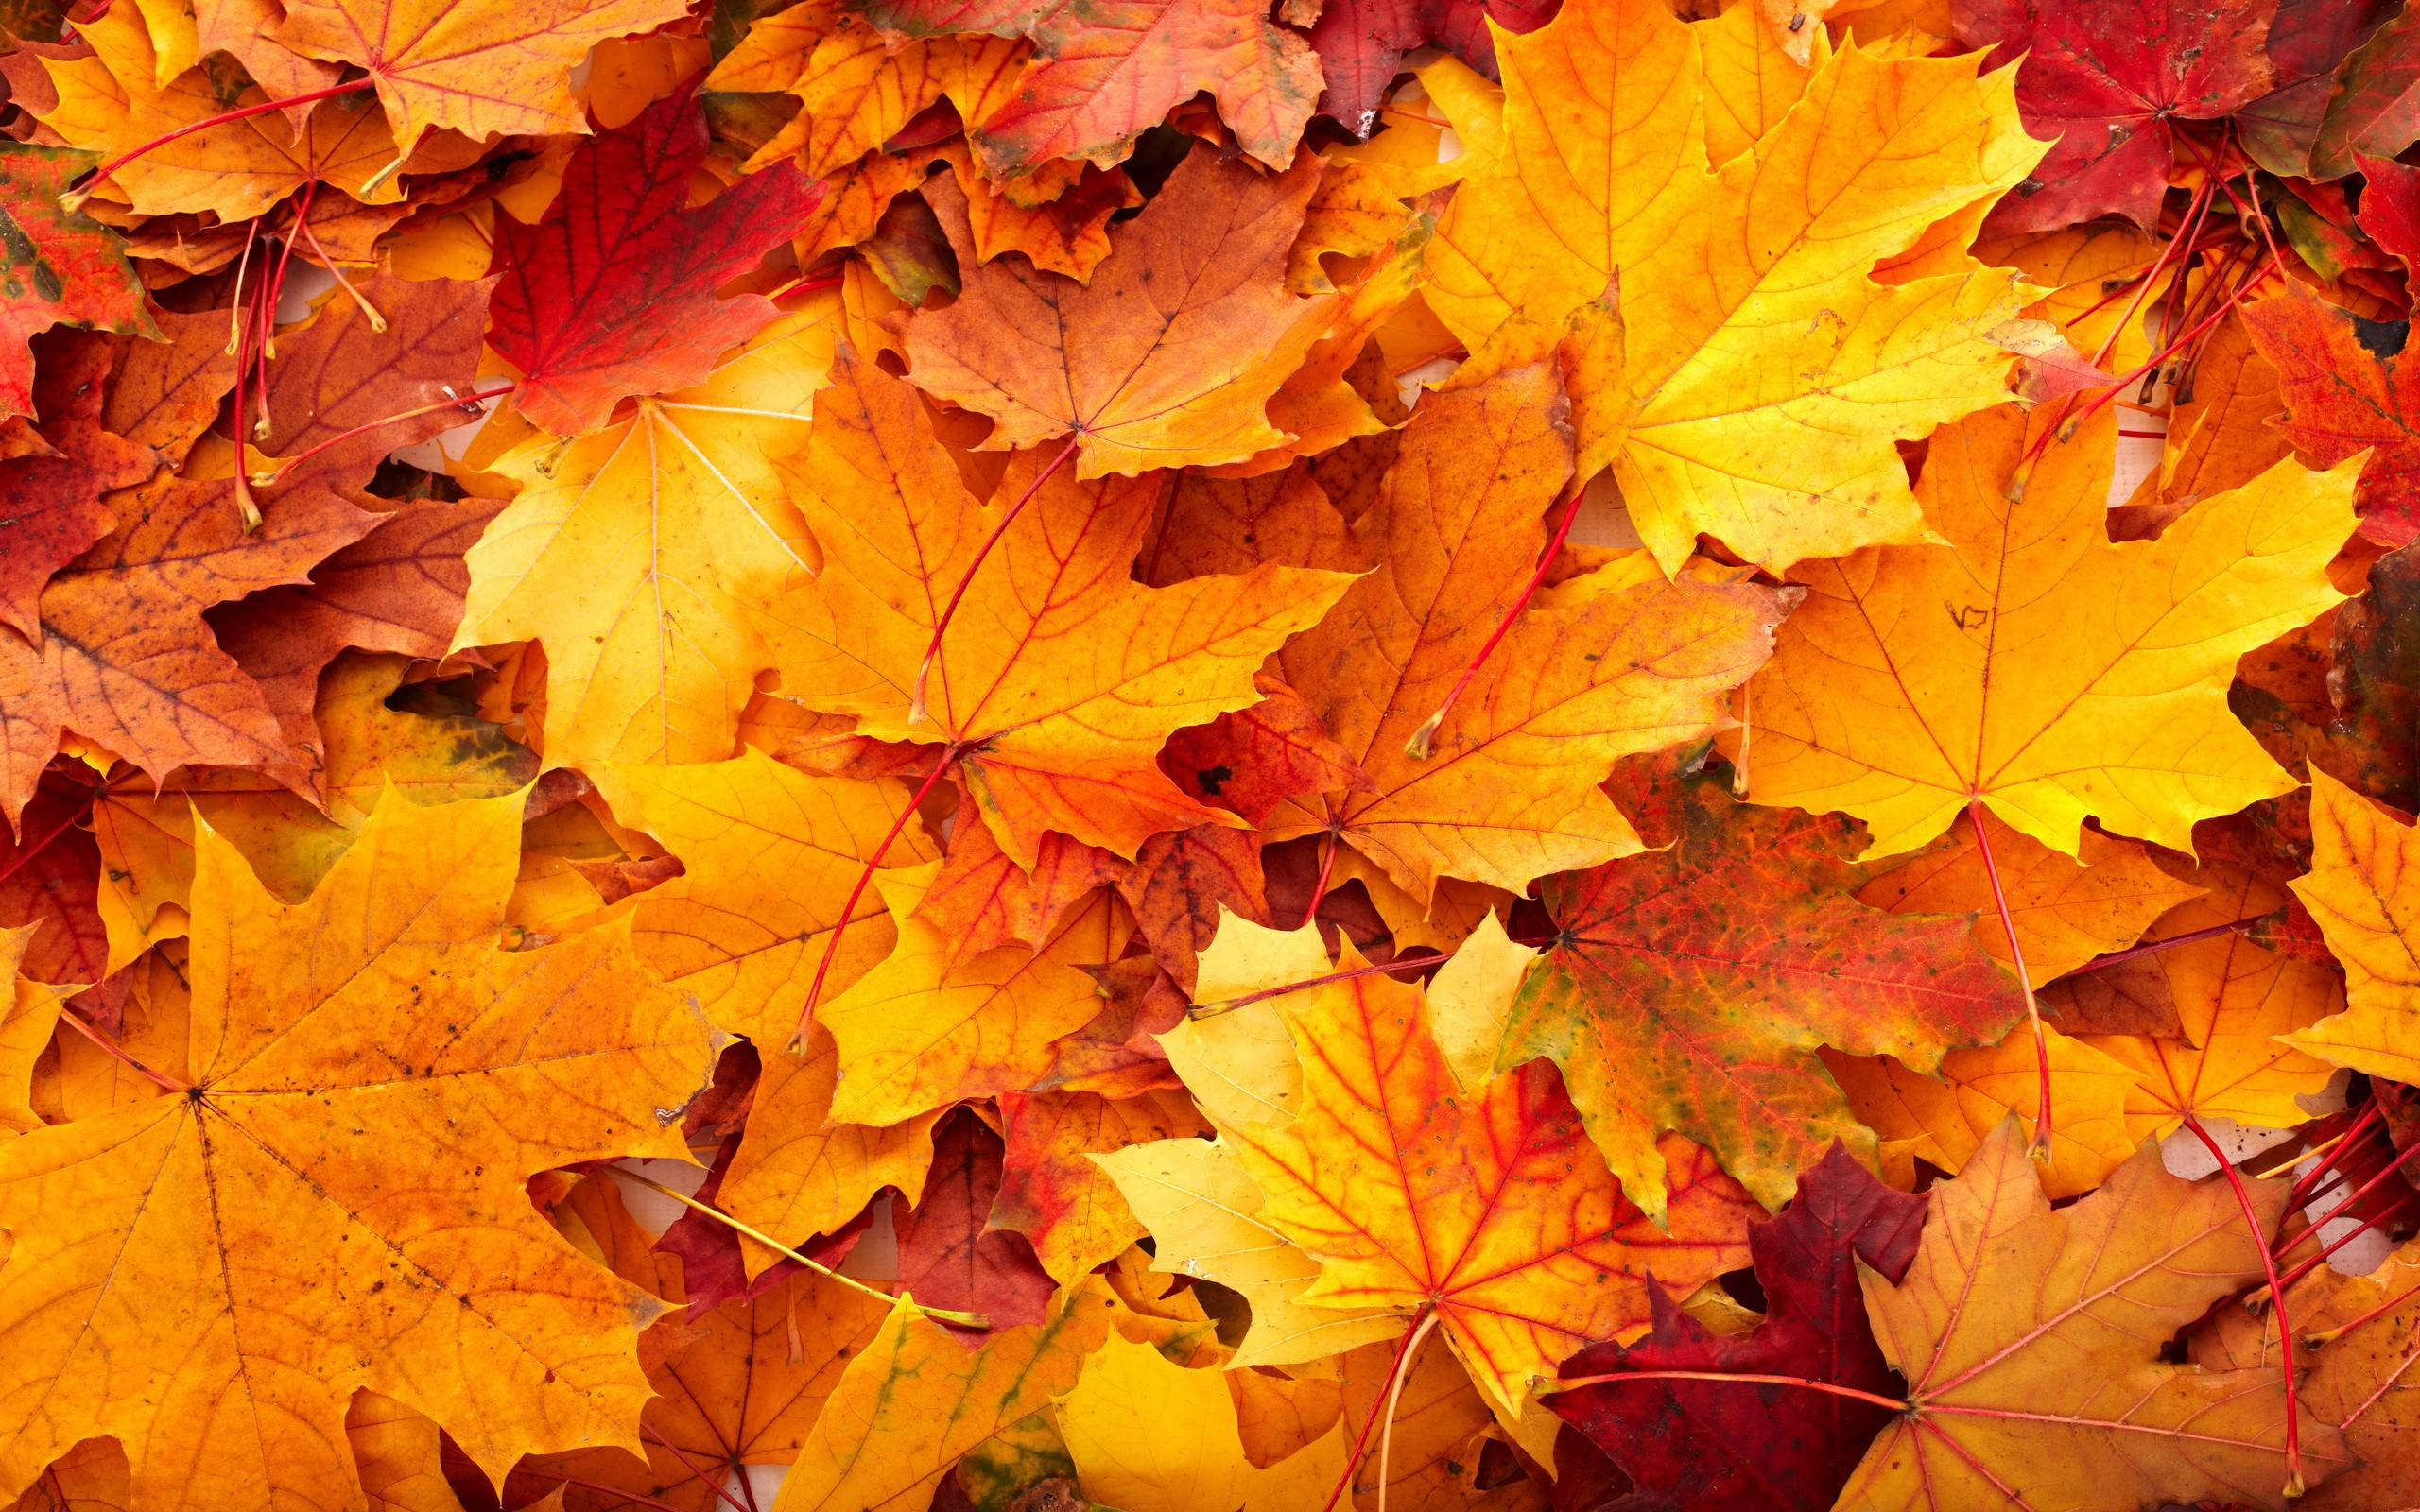 71 fall backgrounds tumblr download free cool hd backgrounds